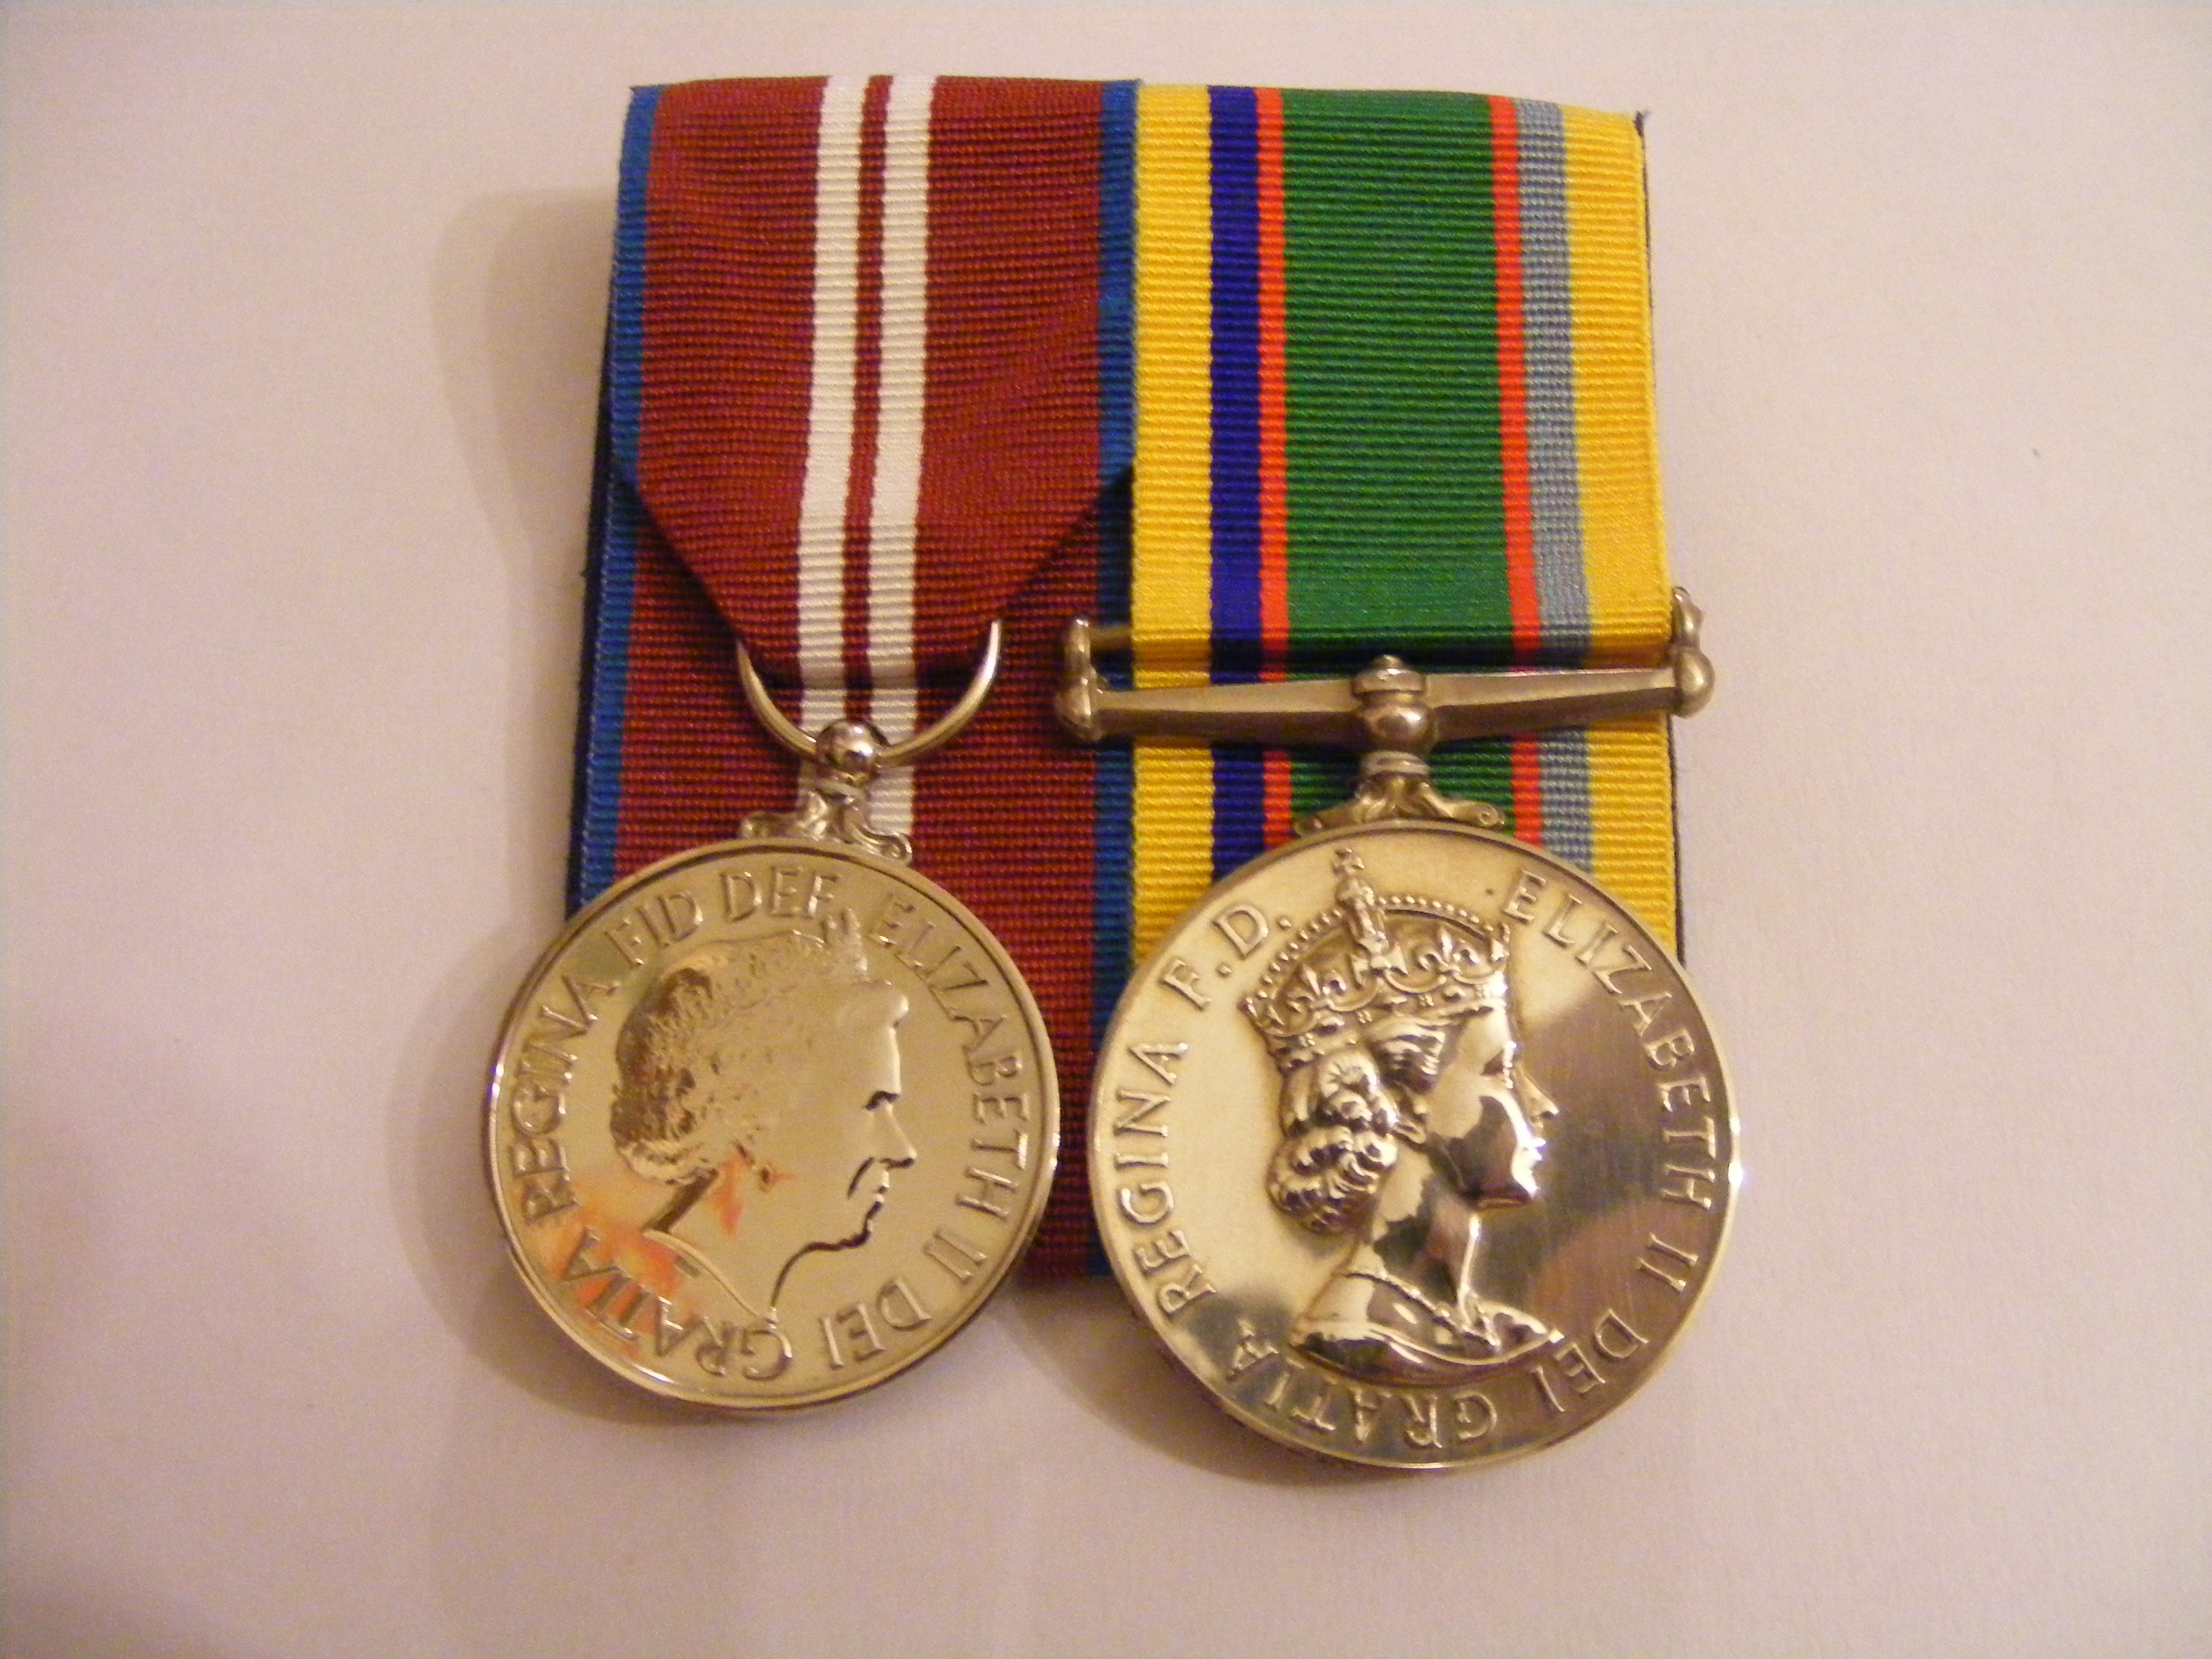 medals jubilee ltd manchester operational with diamond made ready sets and iraq service queens medal afghanistan golden clasp